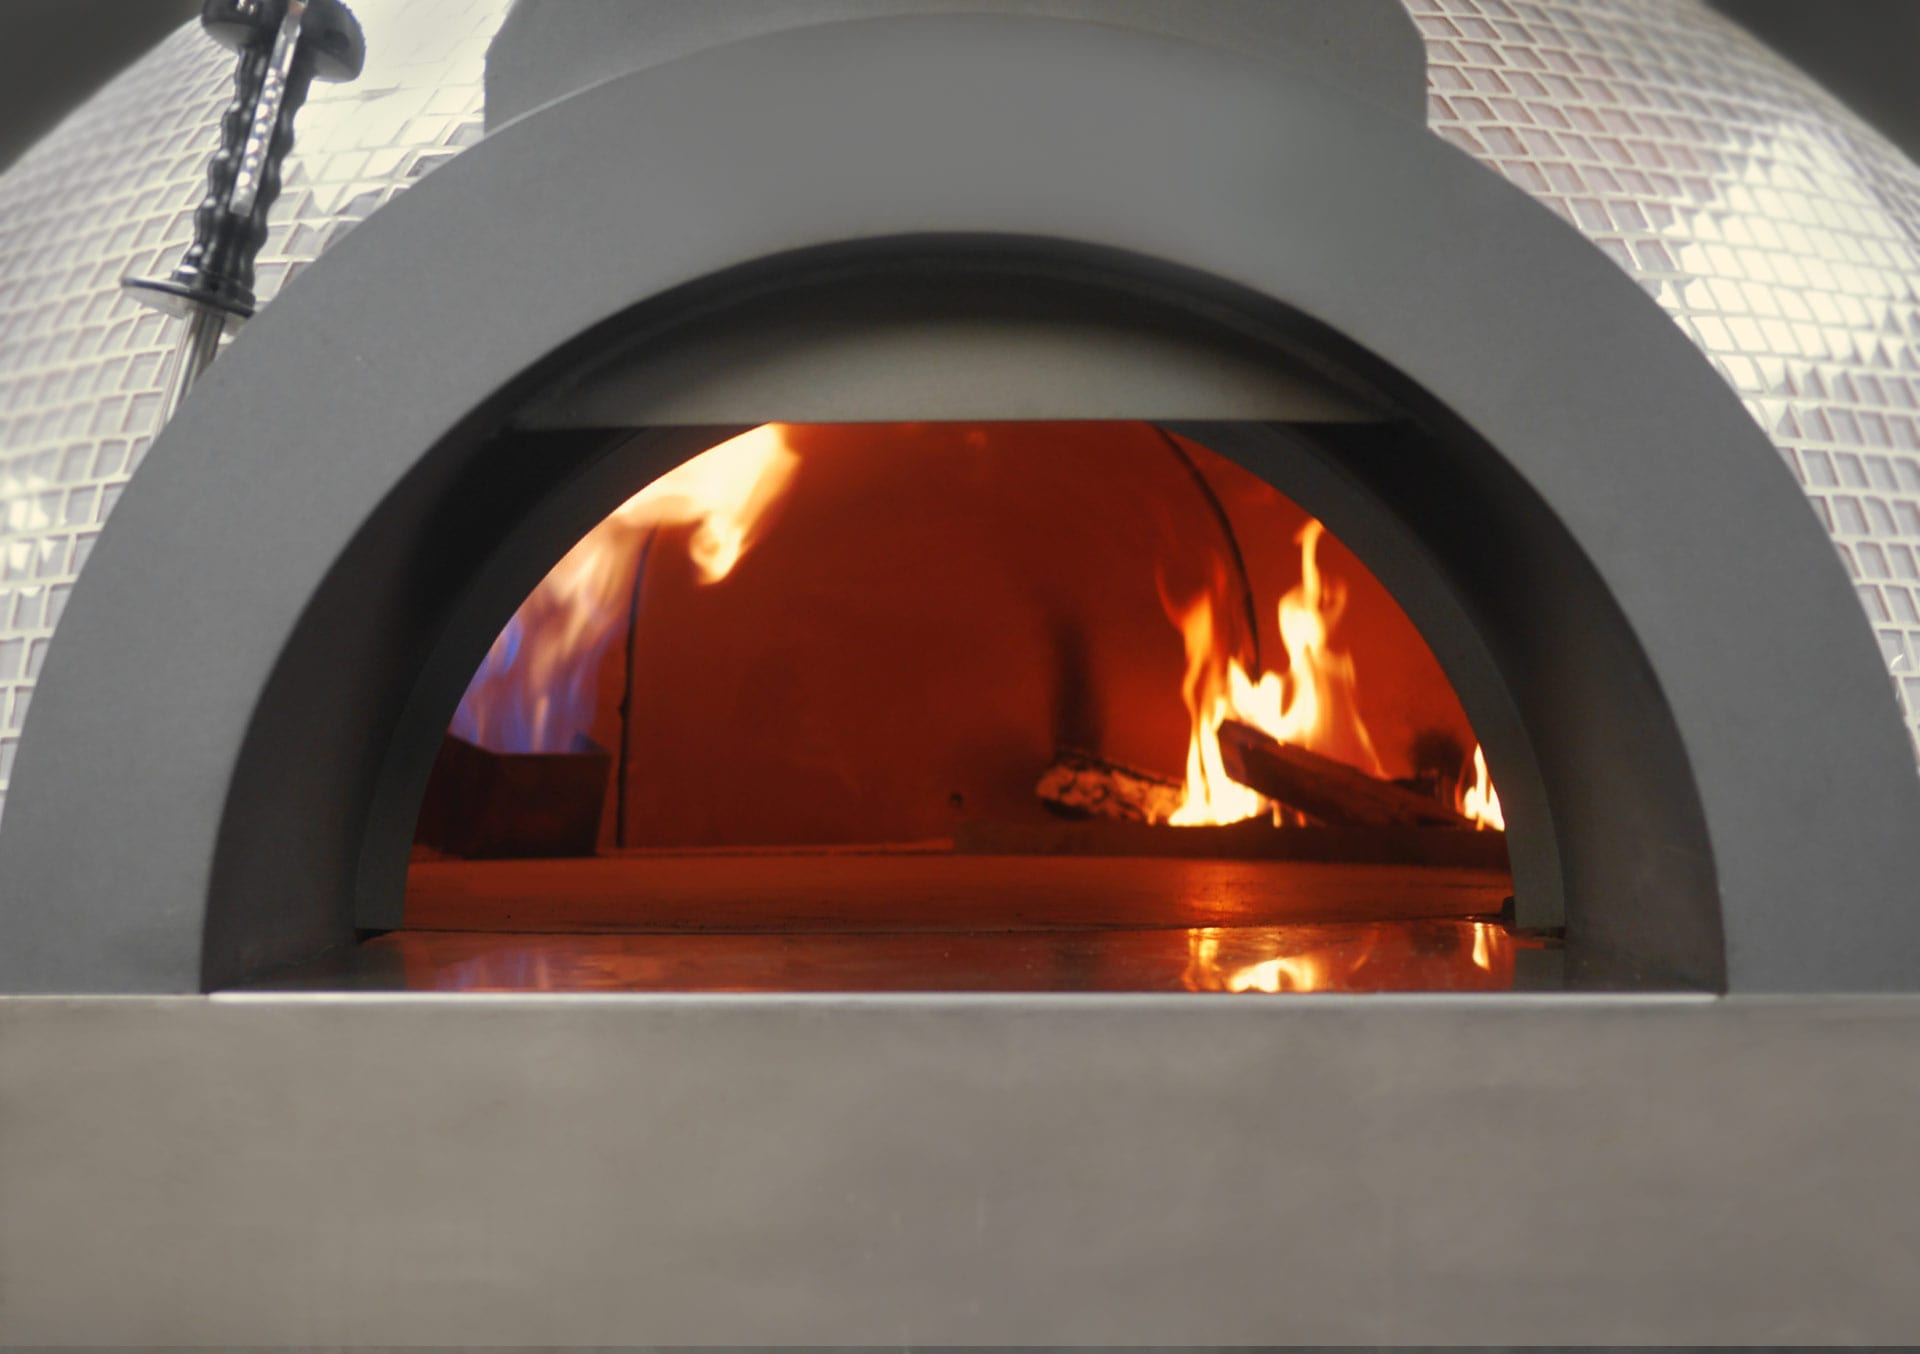 Pavesi Twister - Commercial Rotating Brick Oven | Forza Forni